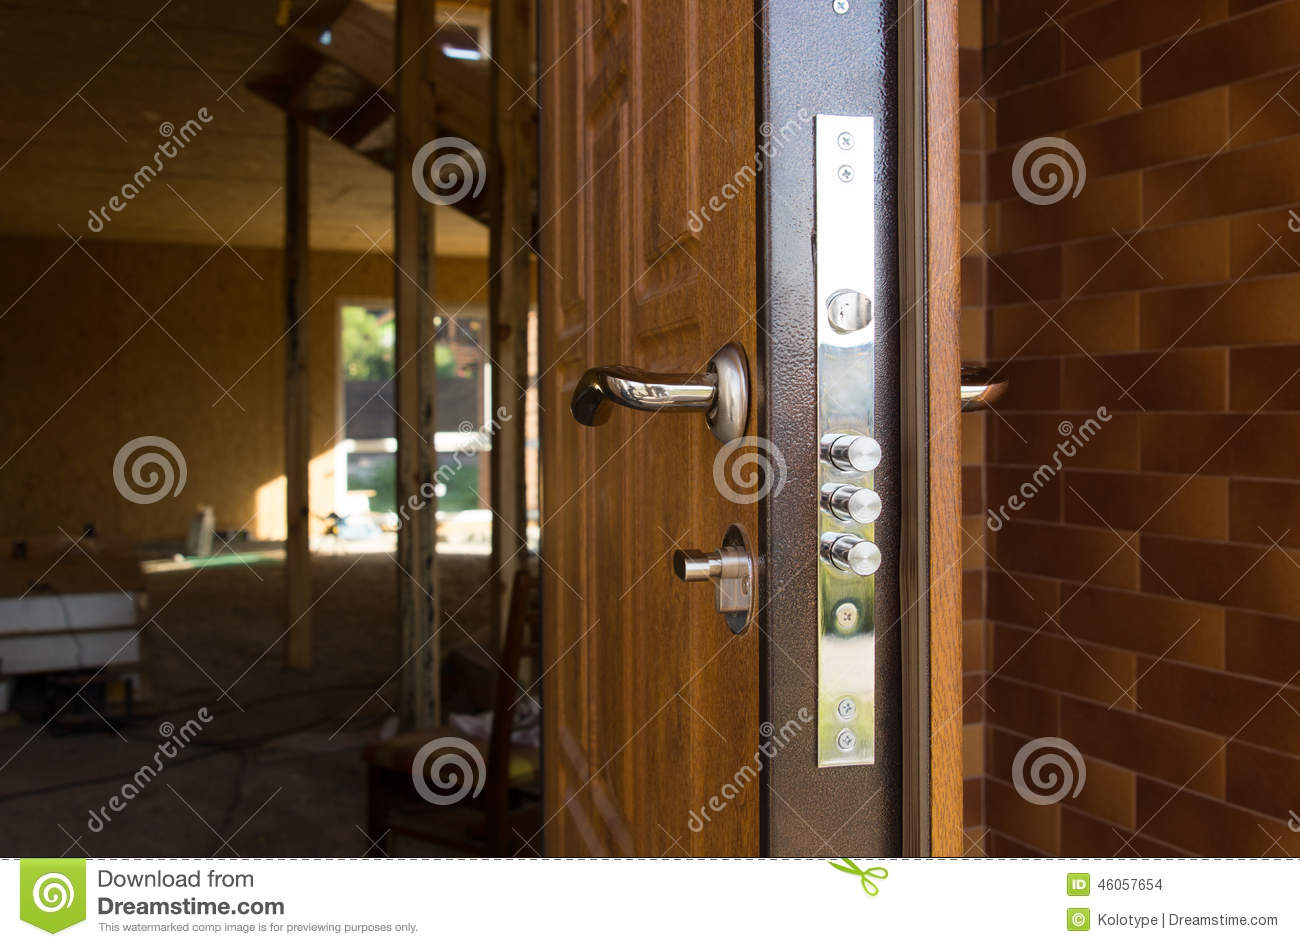 947 #38200E Safety Lock On A New Wooden Front Door Showing The Three Security  save image Safest Front Doors 40071300